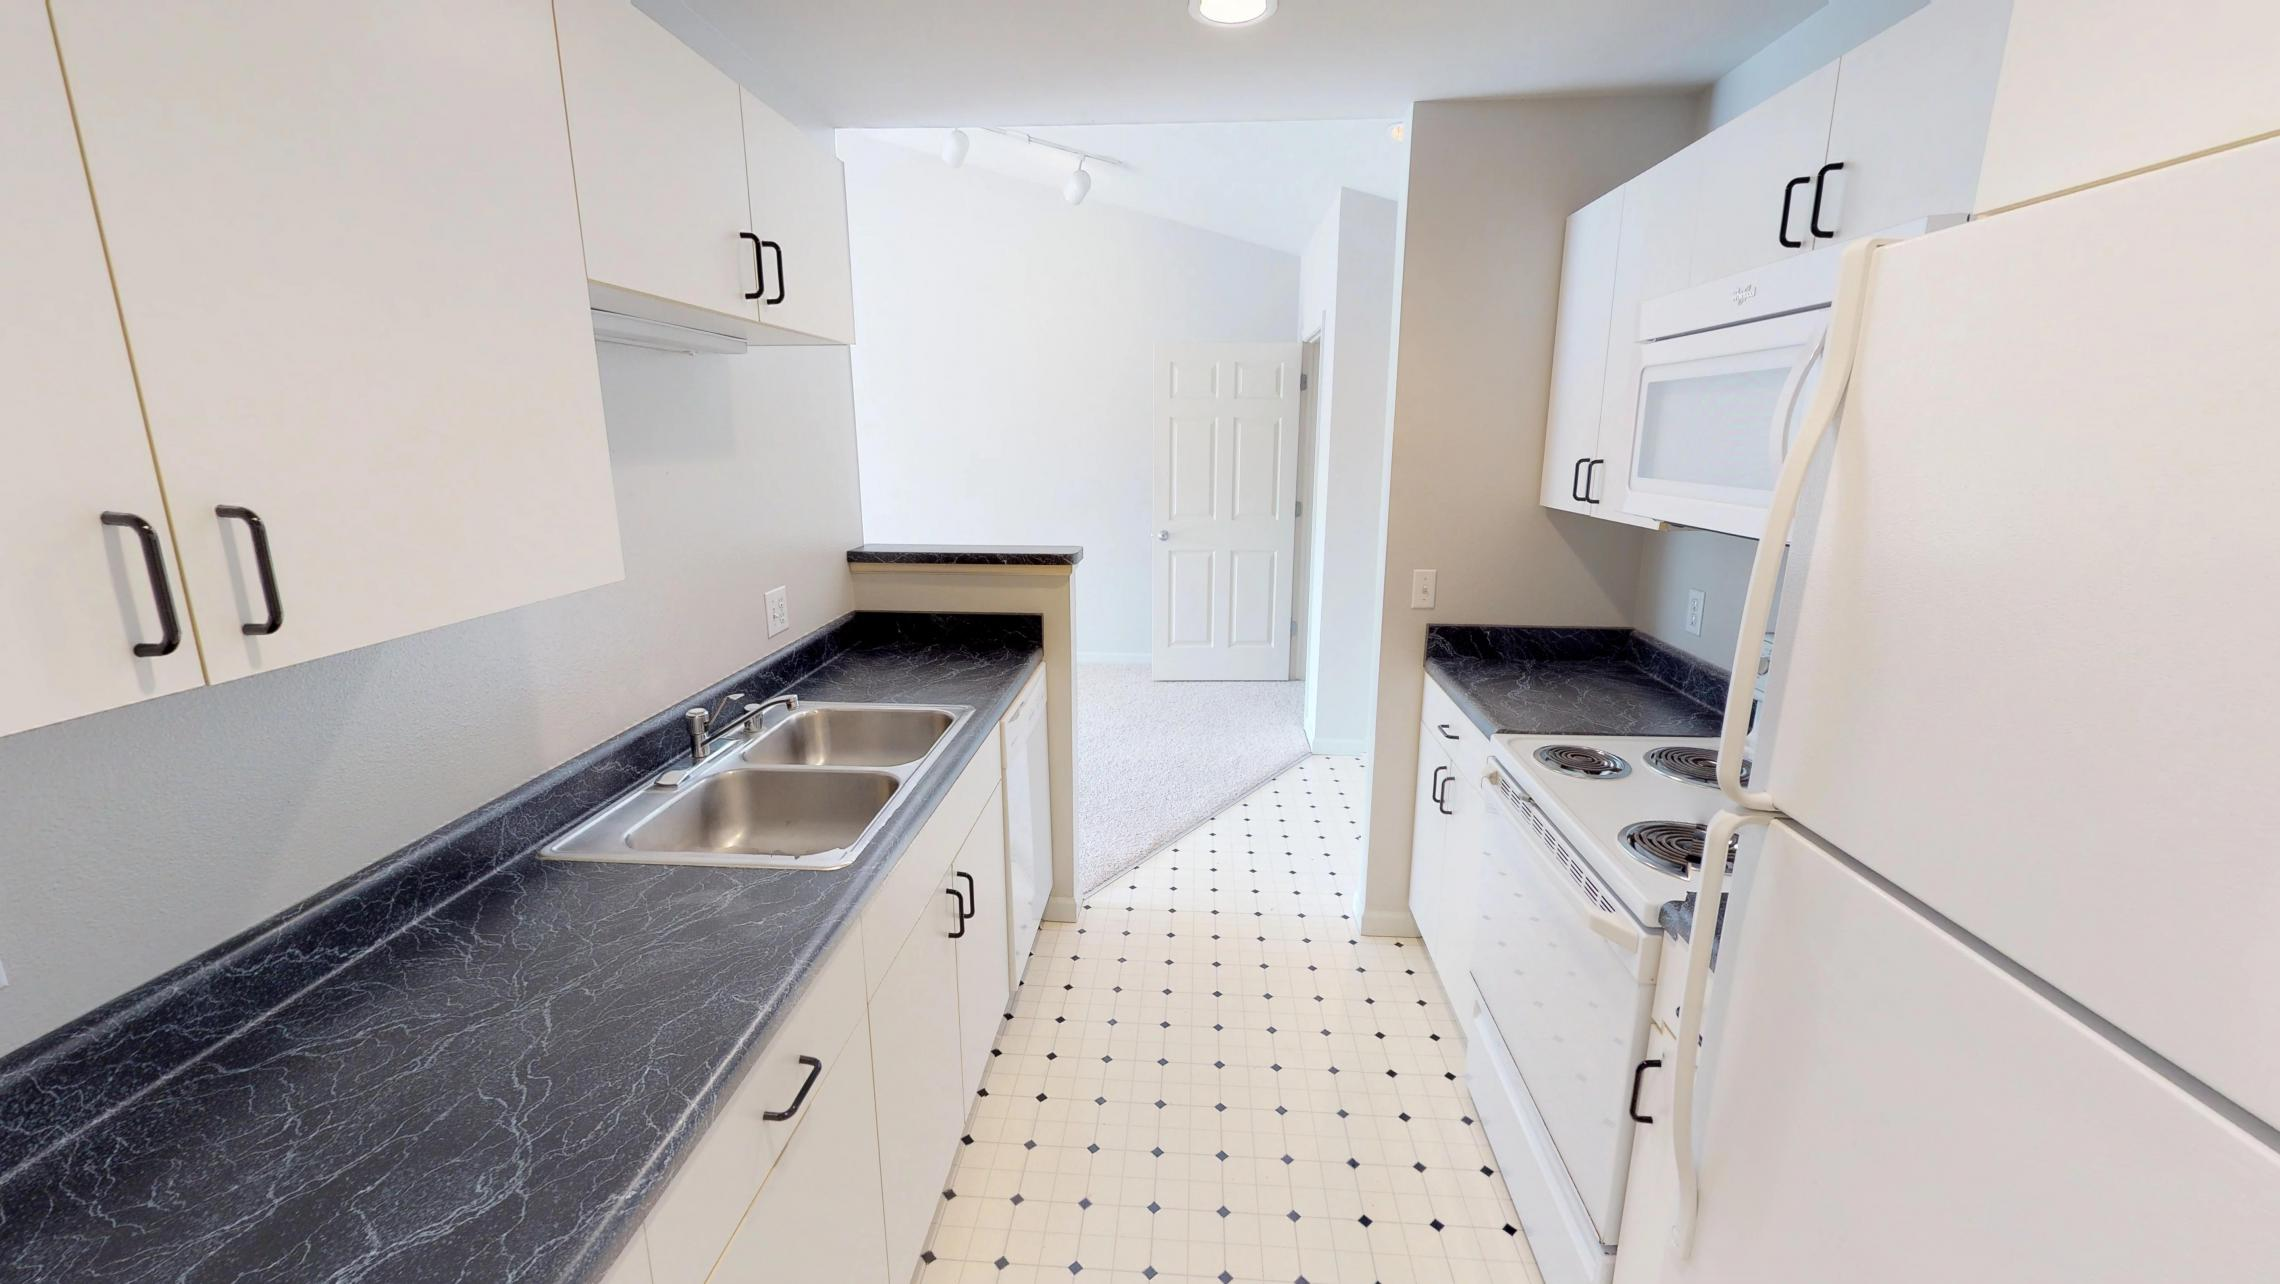 Wilson-Bay-Apartments-303-one bedroom-kitchen-dinning room-downtown-balcony